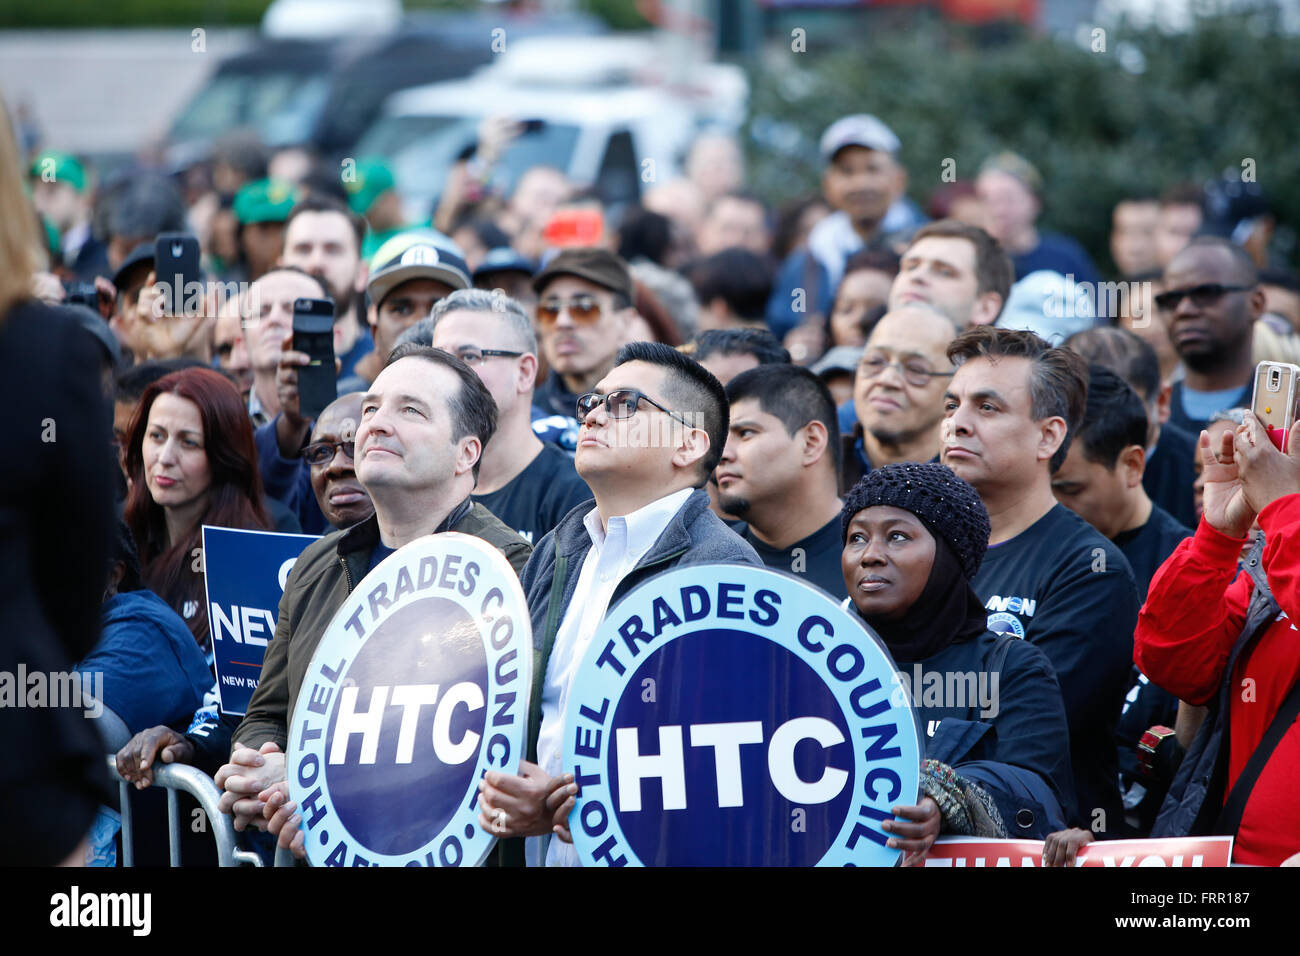 New York City, USA, 23 March 2016: HTC membes listen to speeches during a Foley Square rally in celebration of NYC's Stock Photo